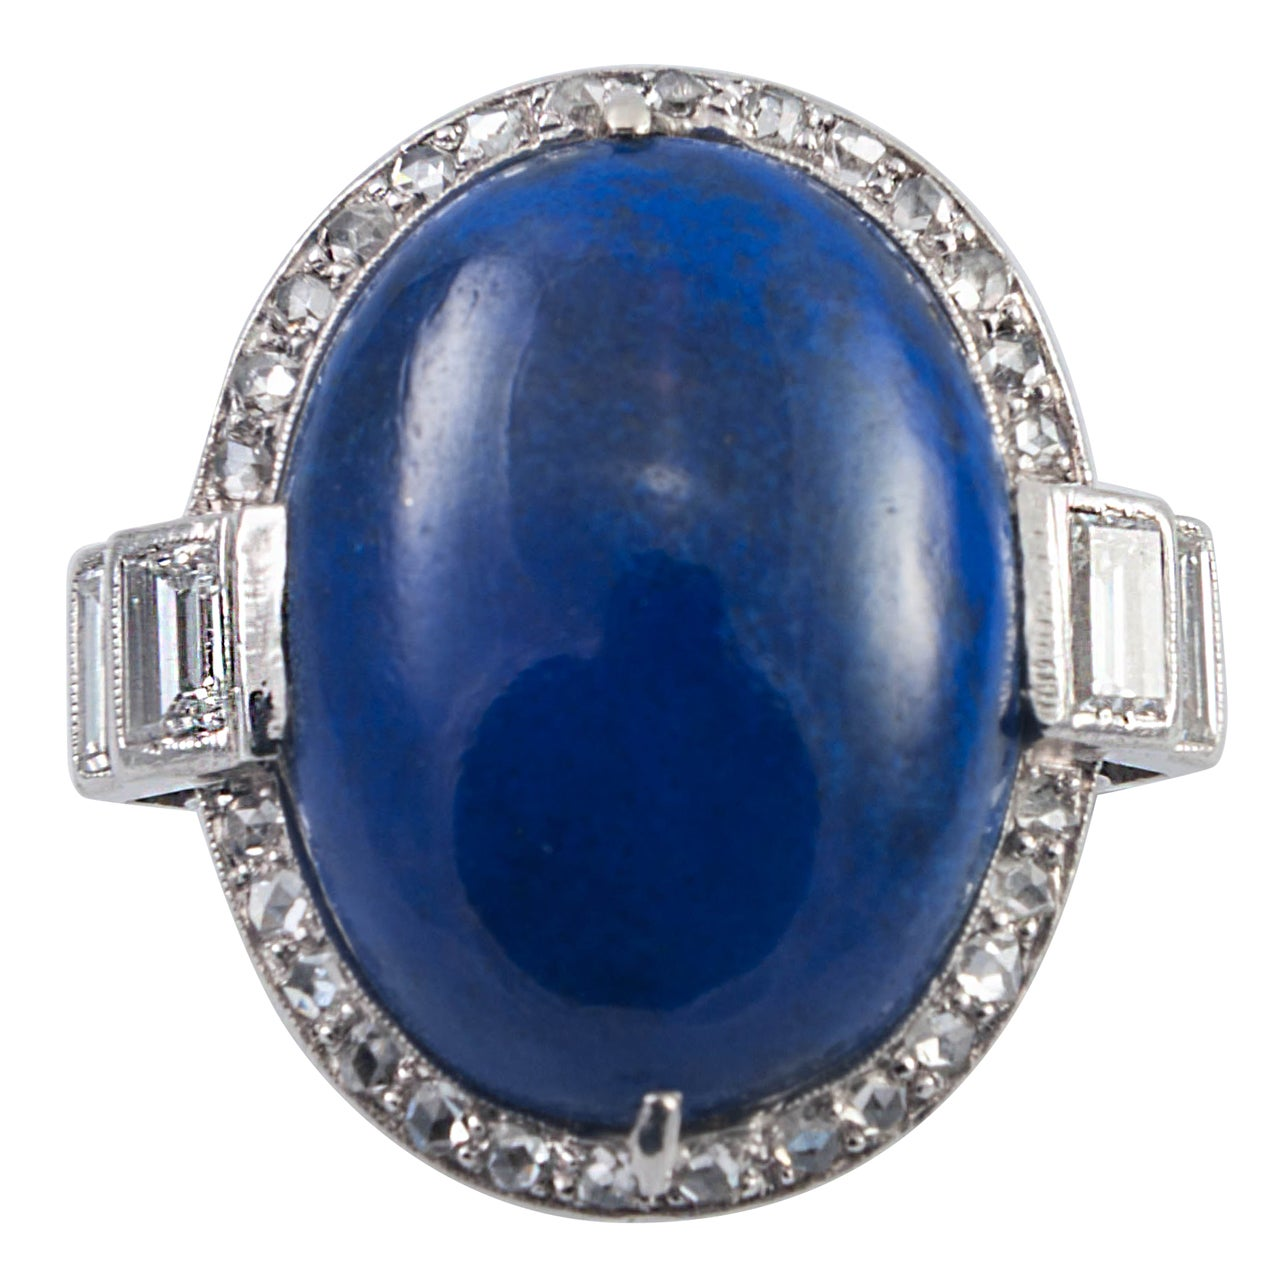 Art Deco Lapis Lazuli Diamond Ring 1